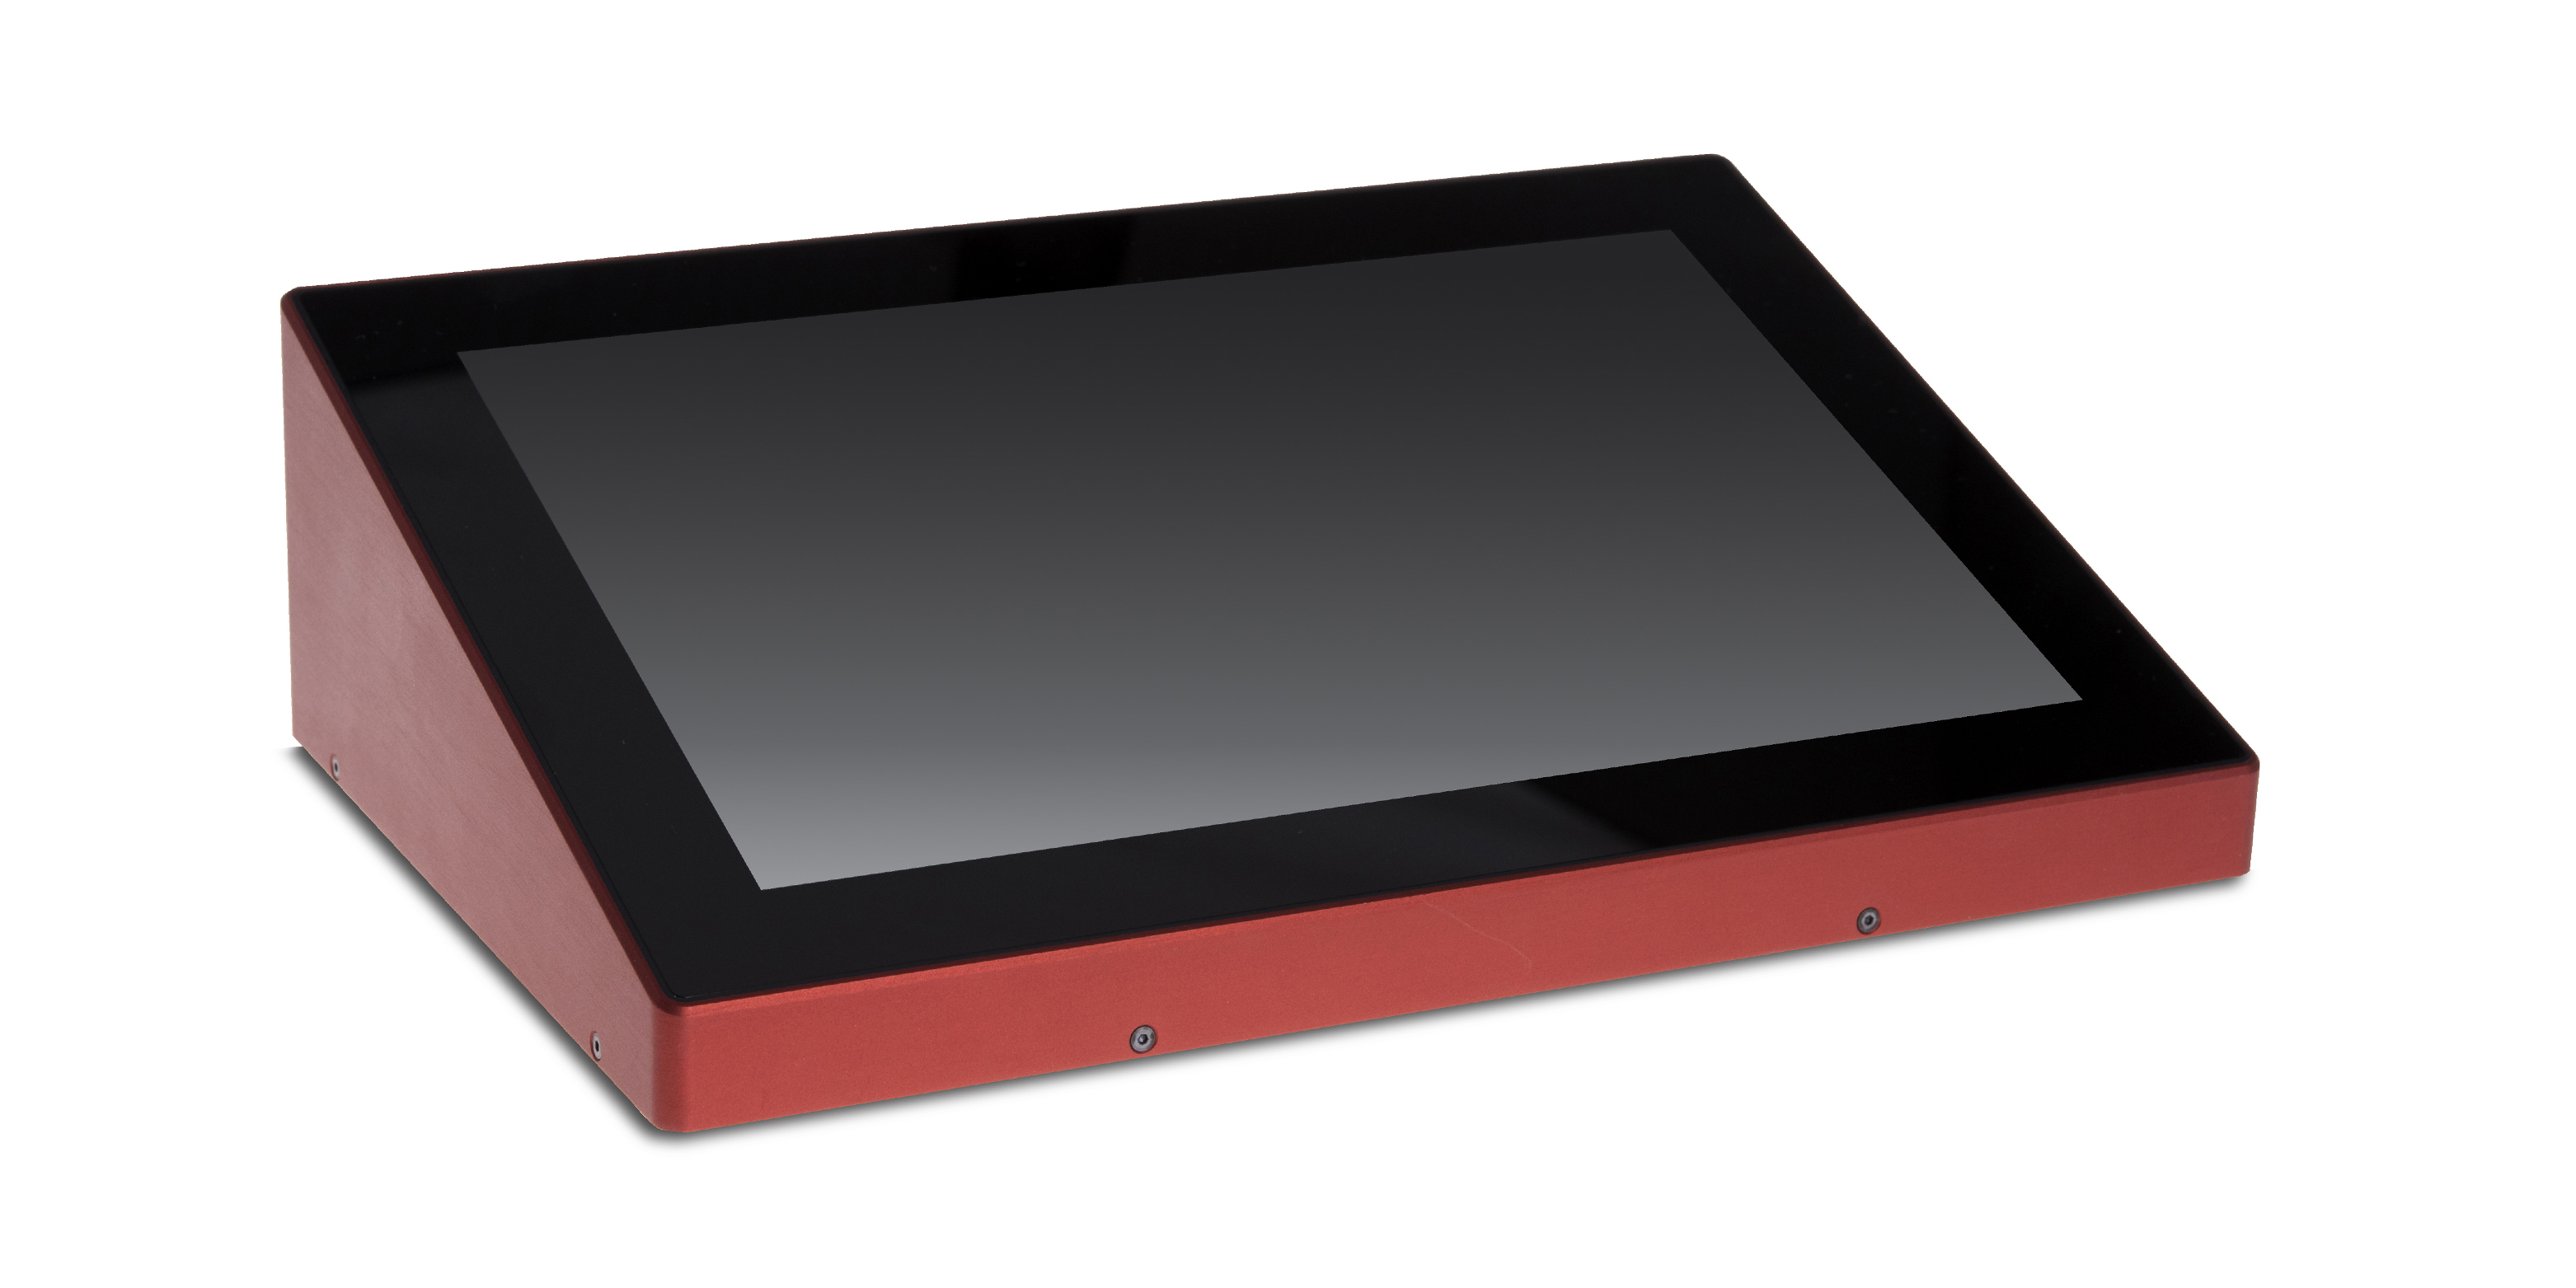 Desktop Unit with Projected Capacitive Touch